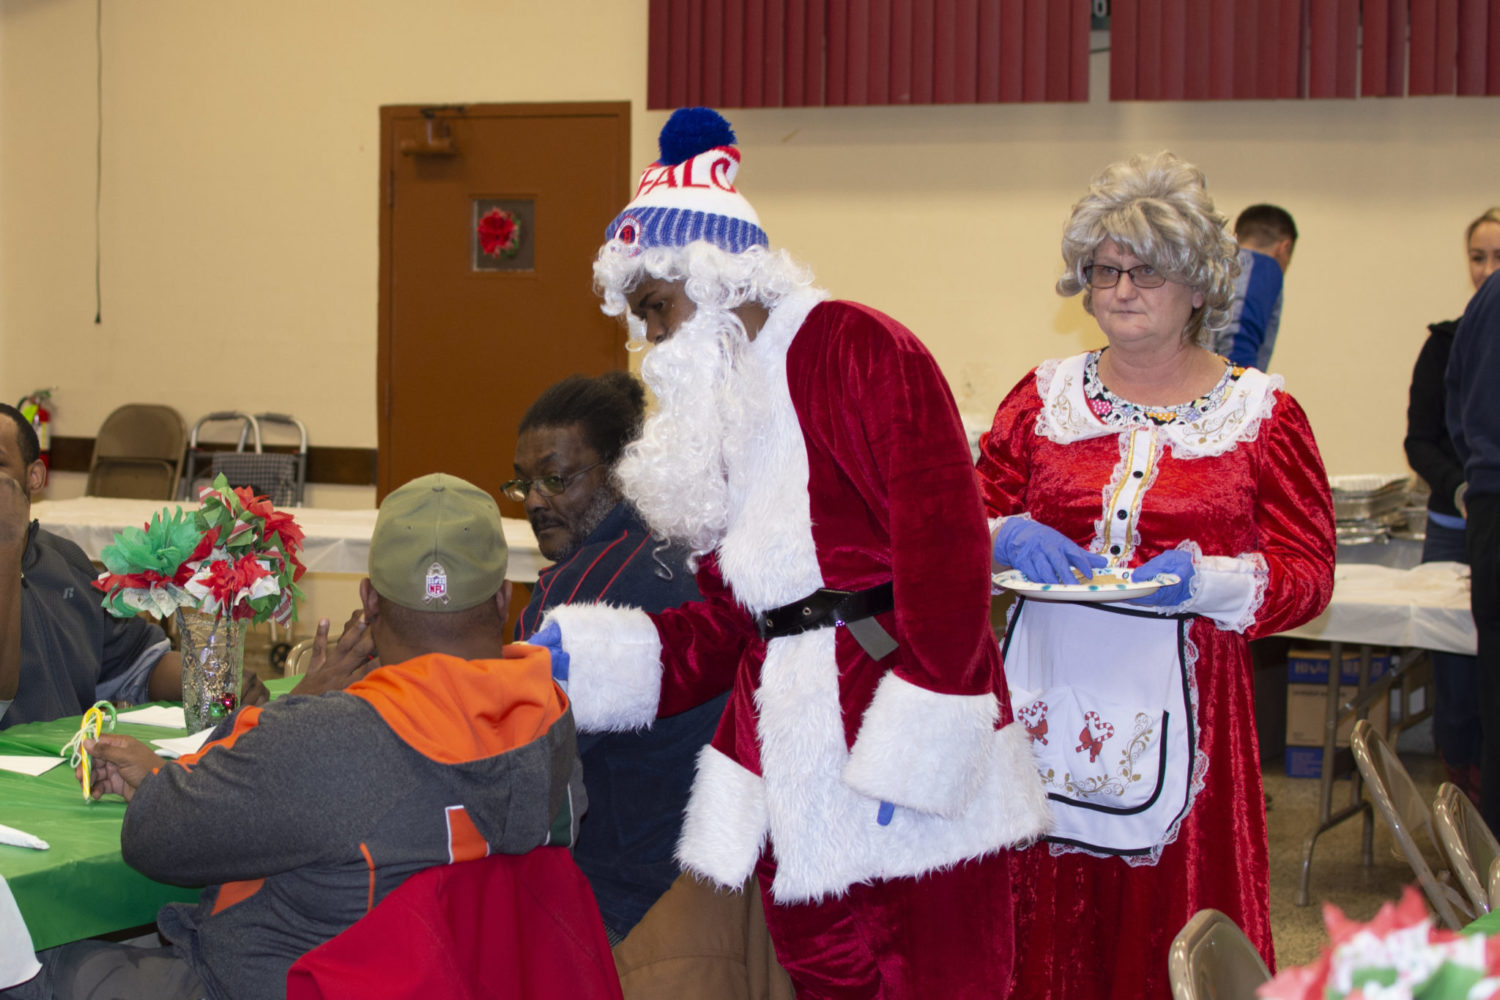 Santa and Mrs. Claus greet people at tables